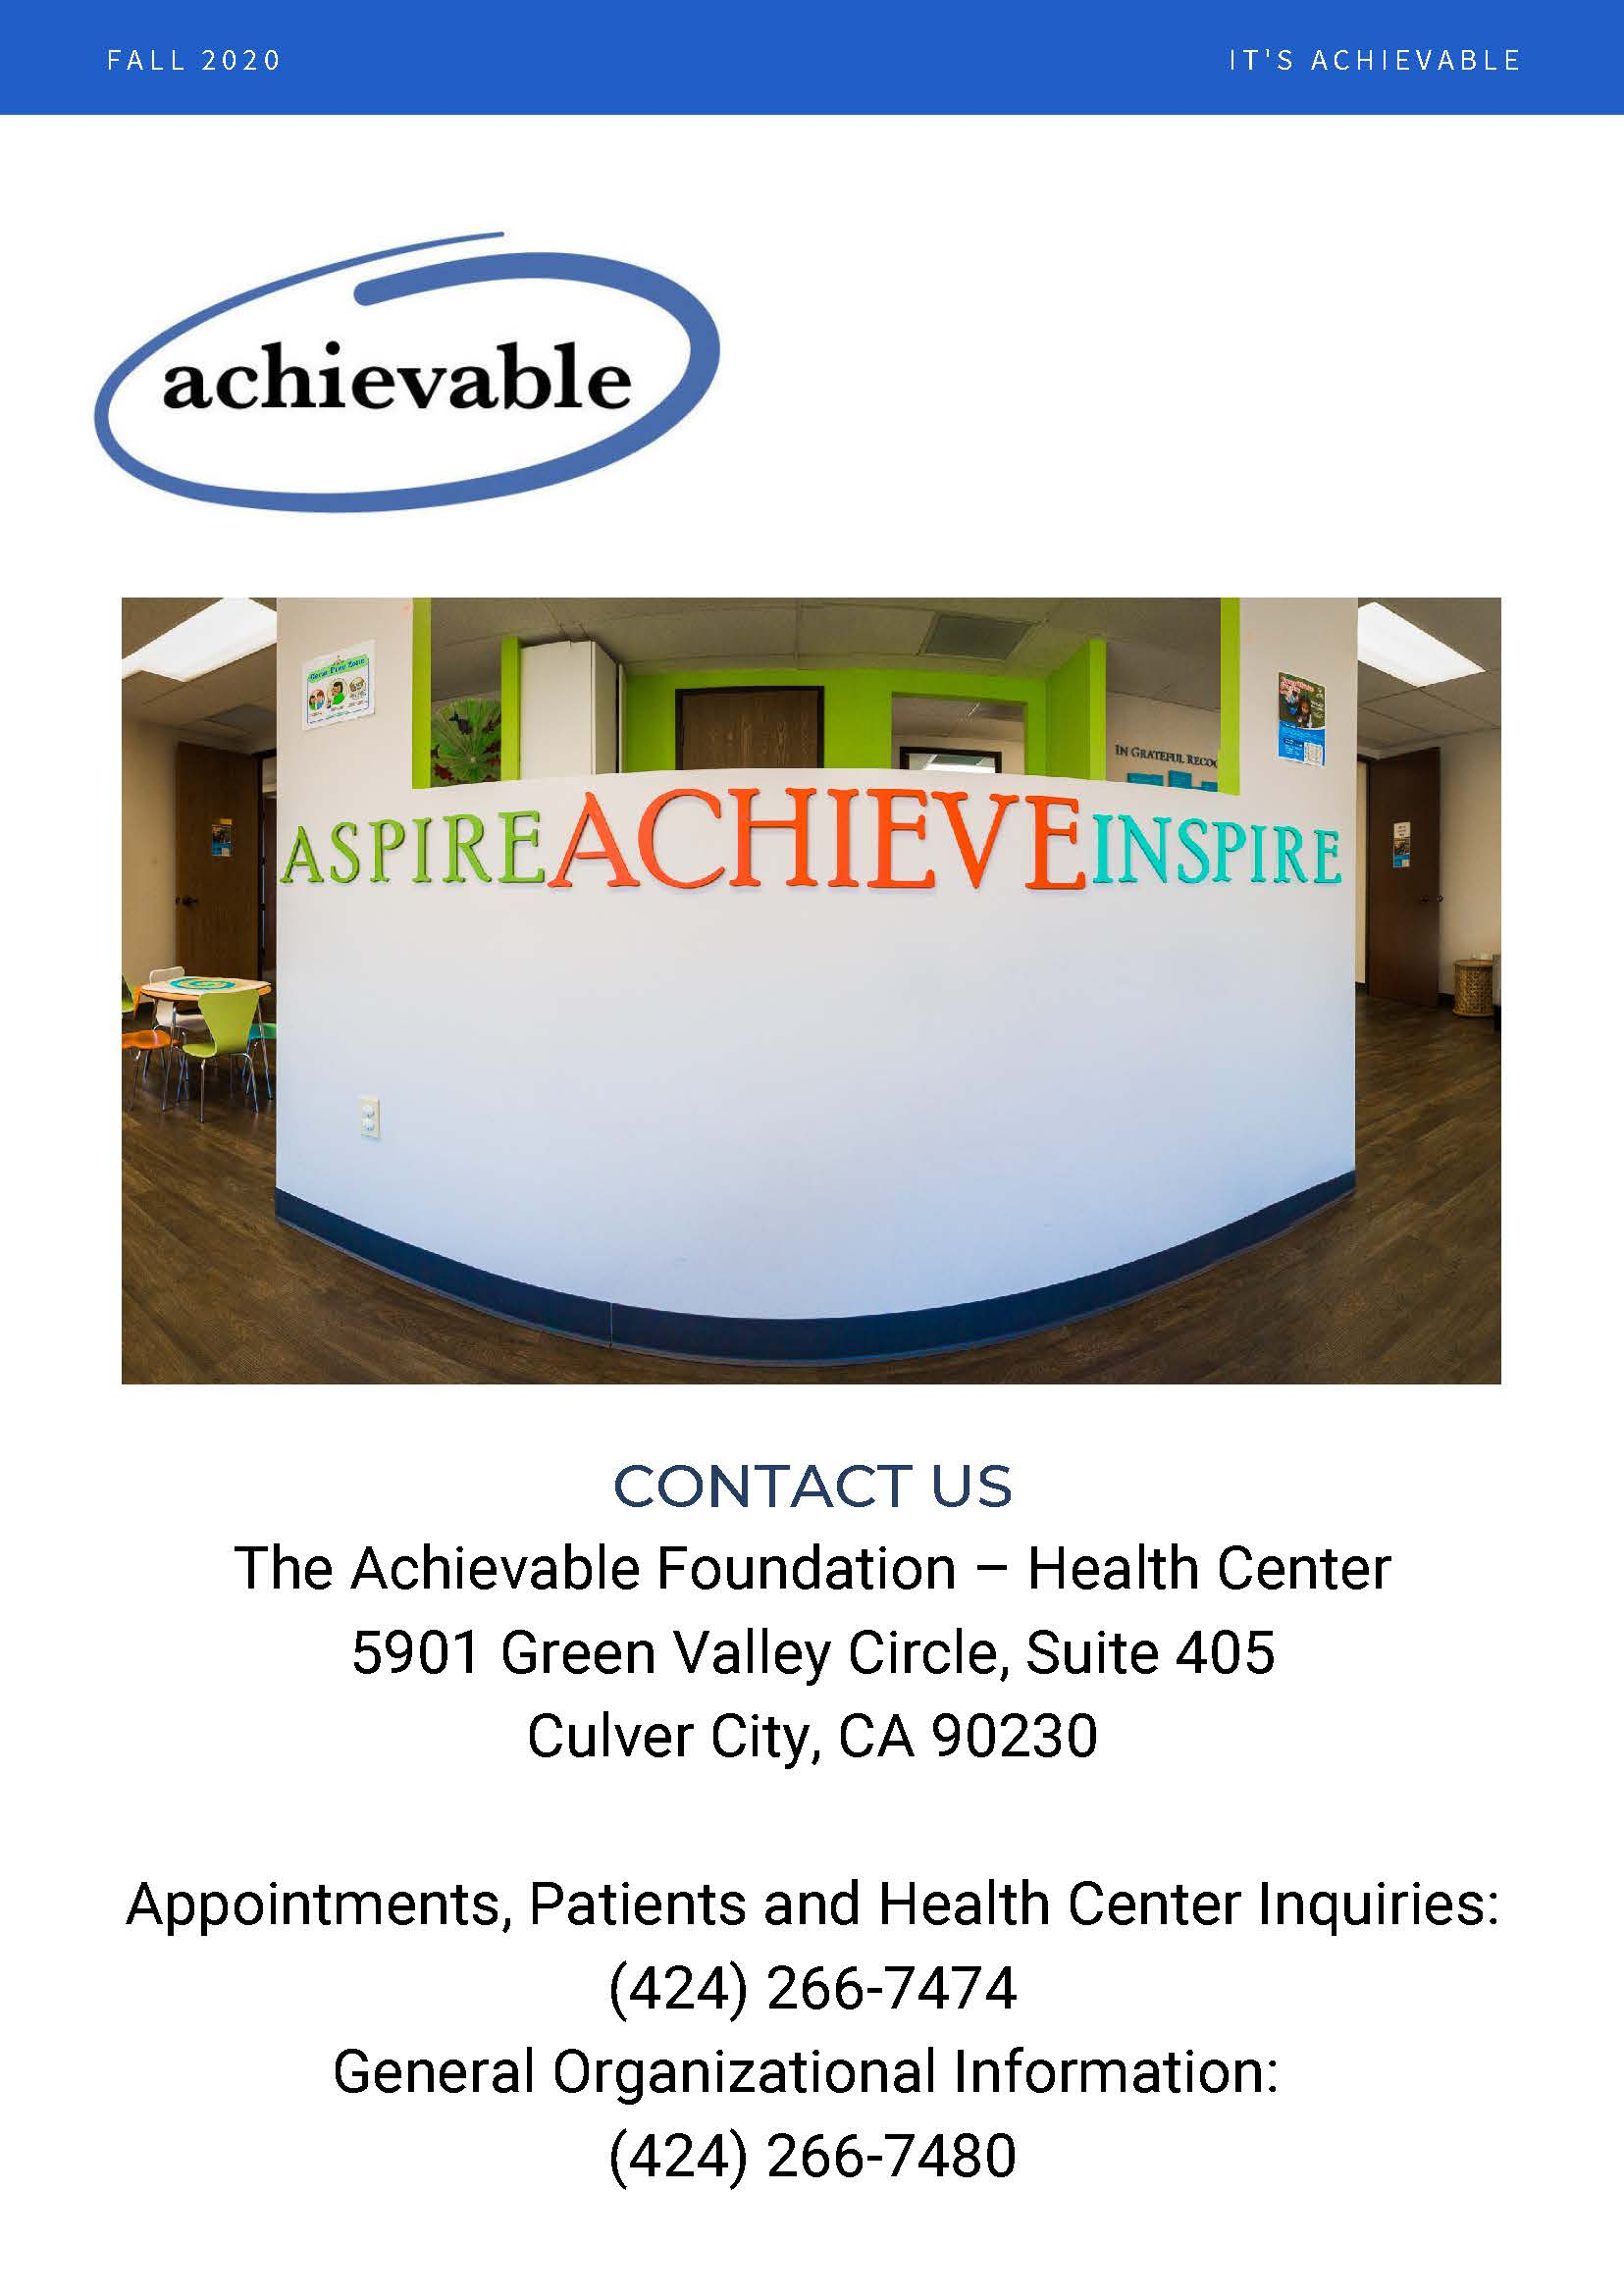 Copy of Achievable Fall 2020 Newsletter FINAL (1)_Page_8